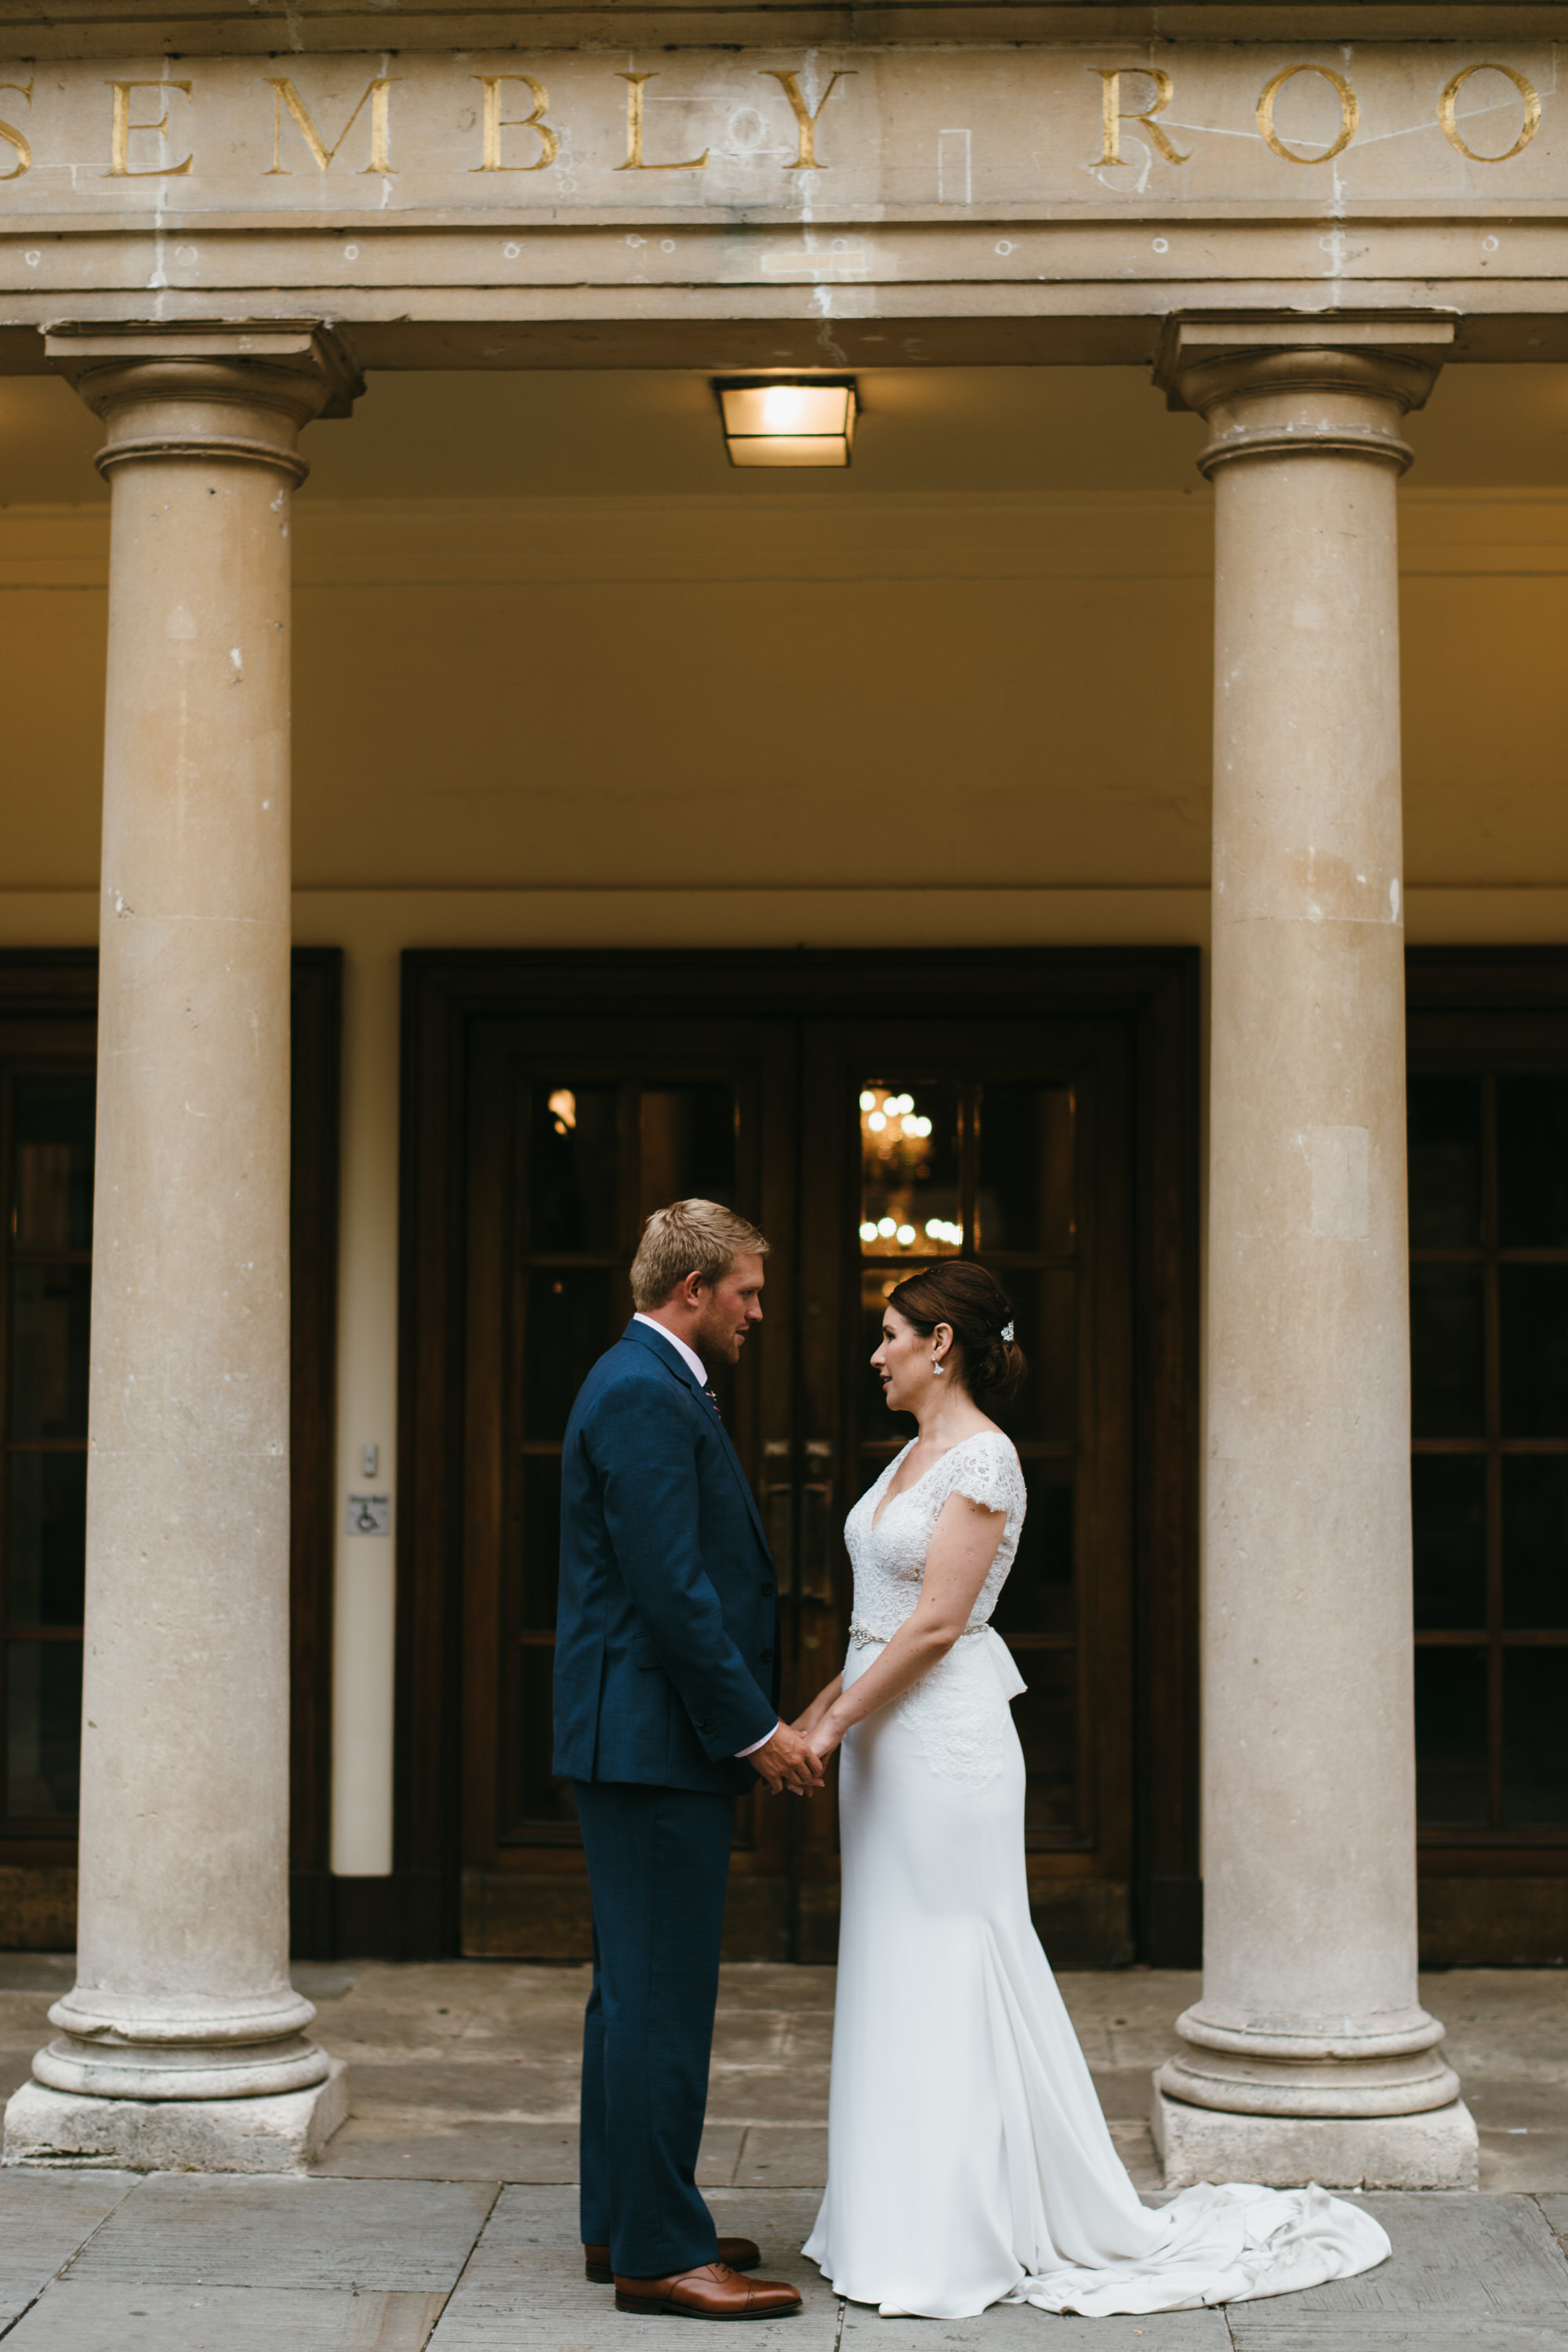 Assembly rooms bath wedding venue simon biffen photography 11